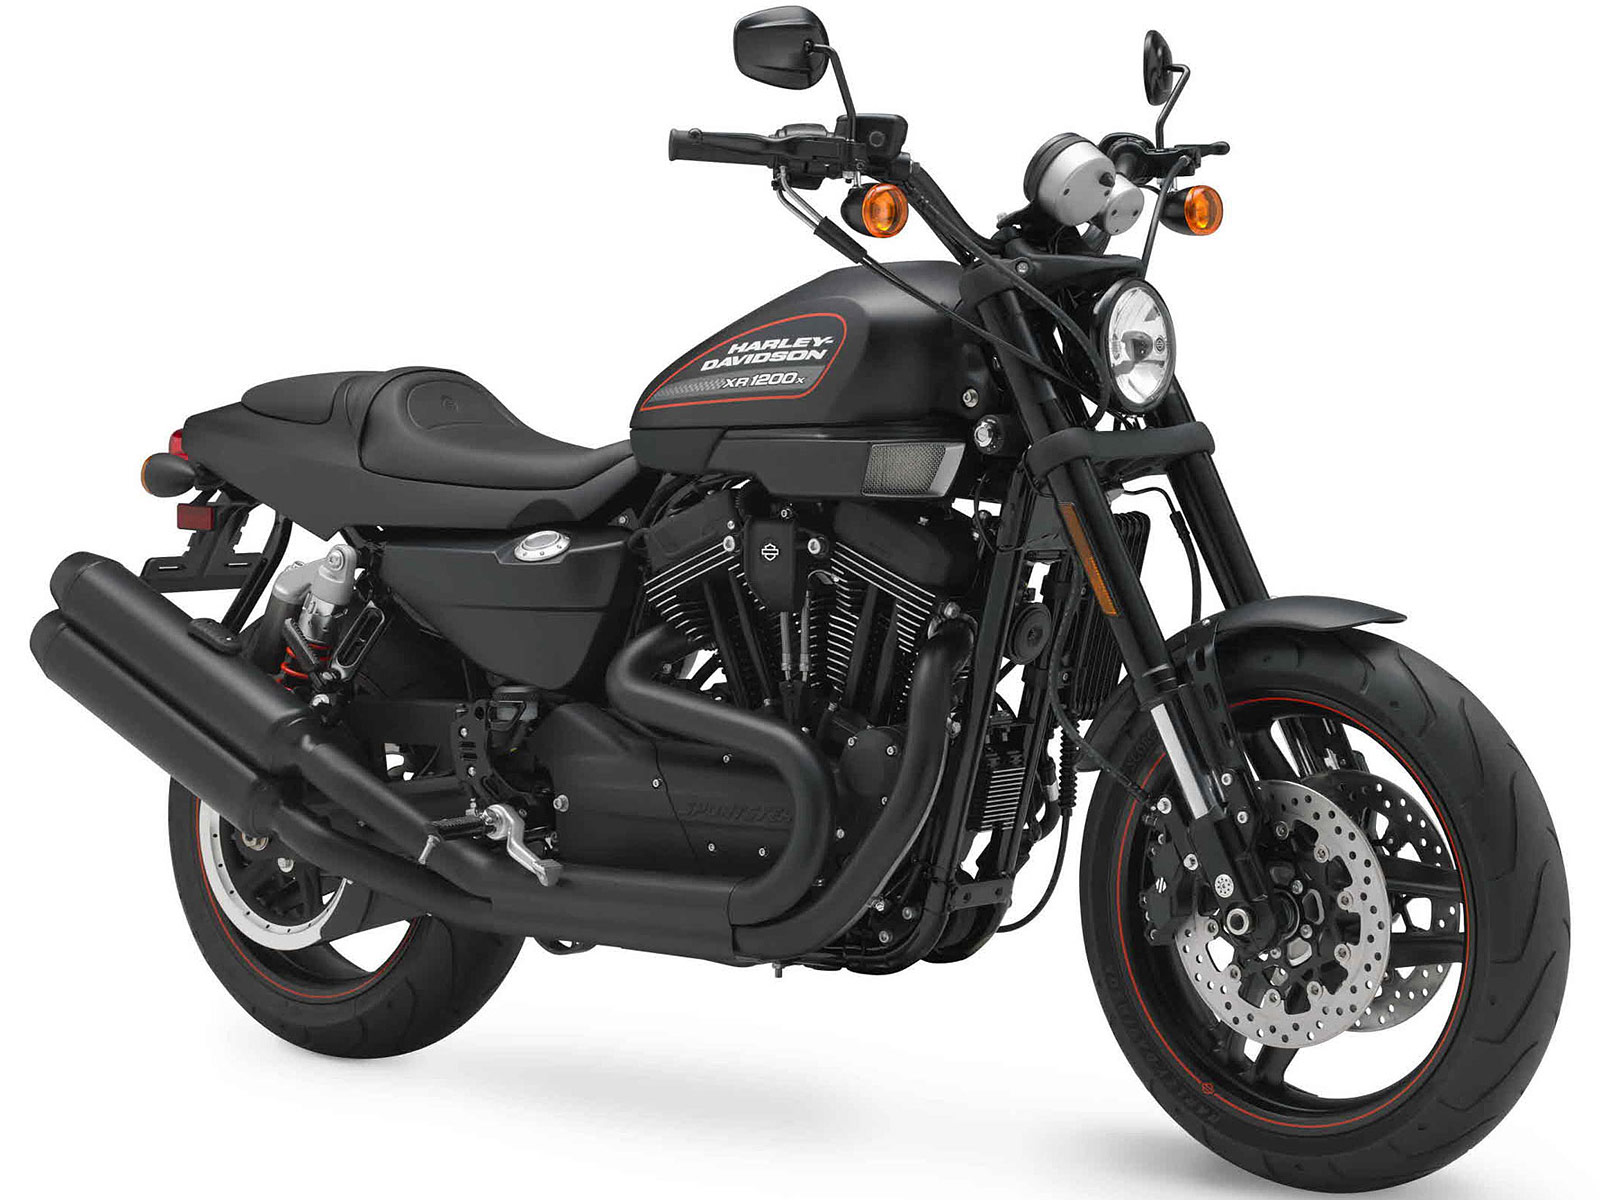 Harley Davidson 2012: 2012 Harley-Davidson XR1200X Pictures, Review, Specifications